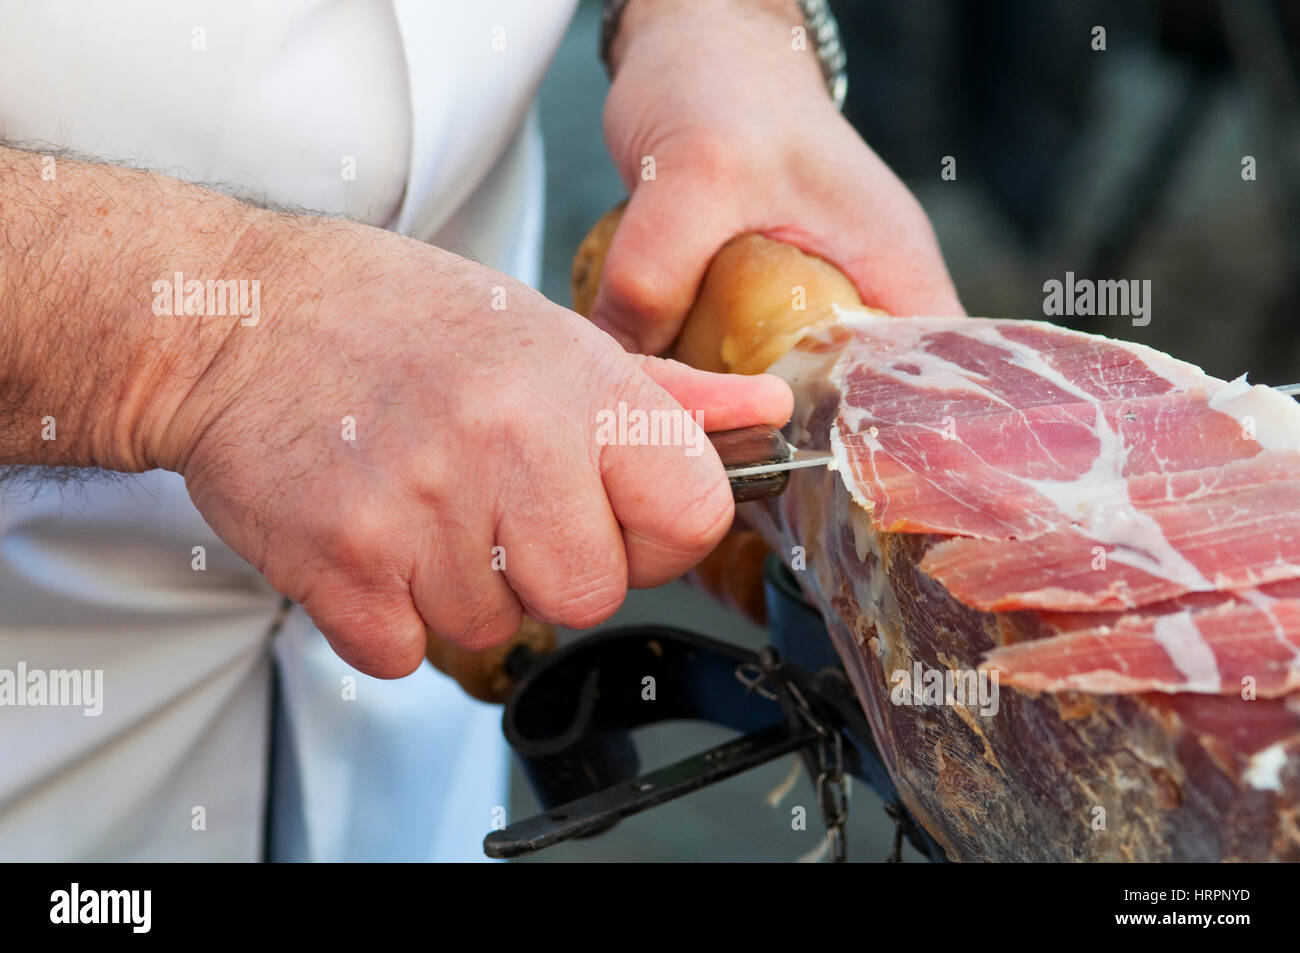 Italy, Umbria, Norcia, Stall Market, Market Stall Trader Carving a Ham - Stock Image